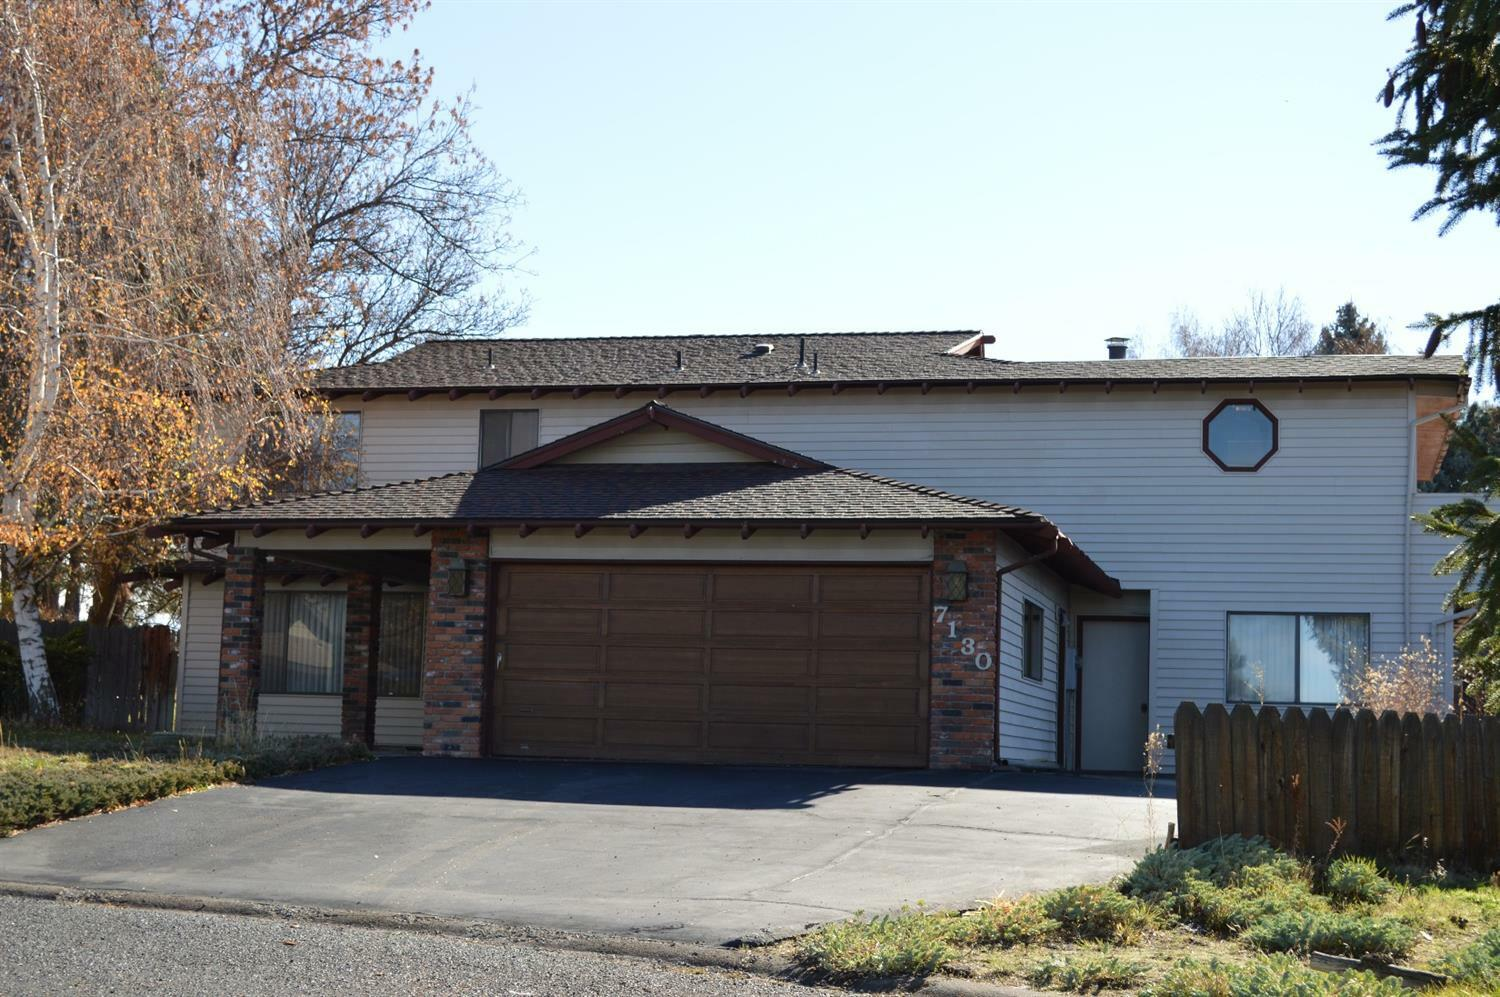 7130 Sierra Place, Klamath Falls, OR - USA (photo 1)